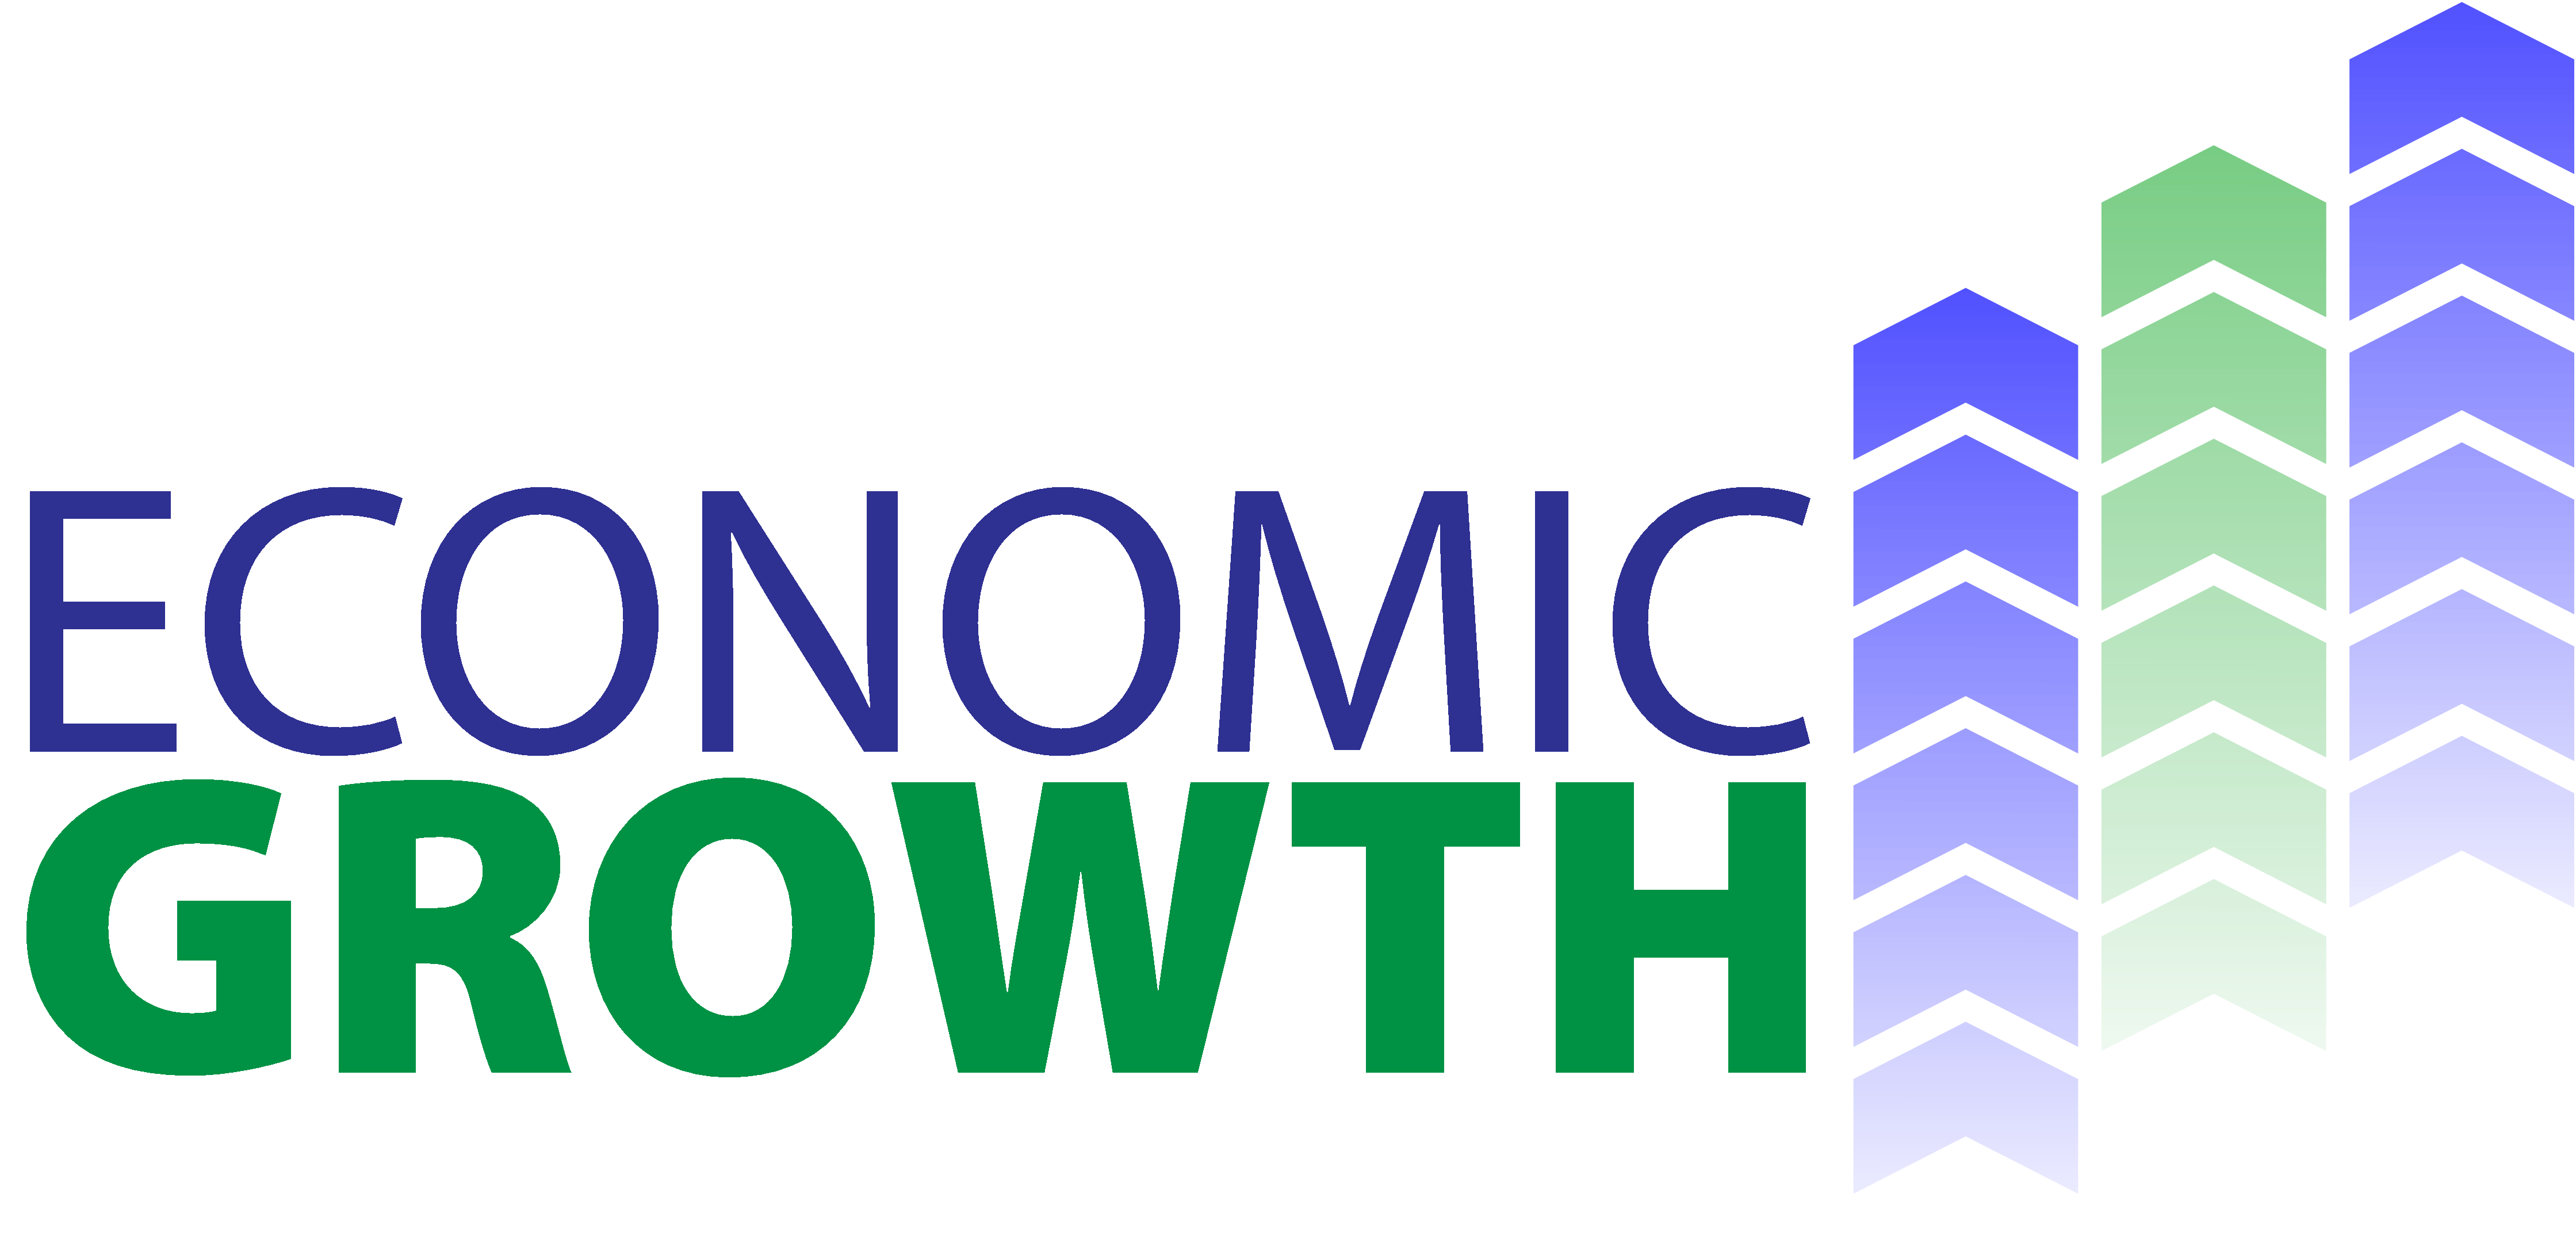 Images of economic growth. Statistics clipart economy